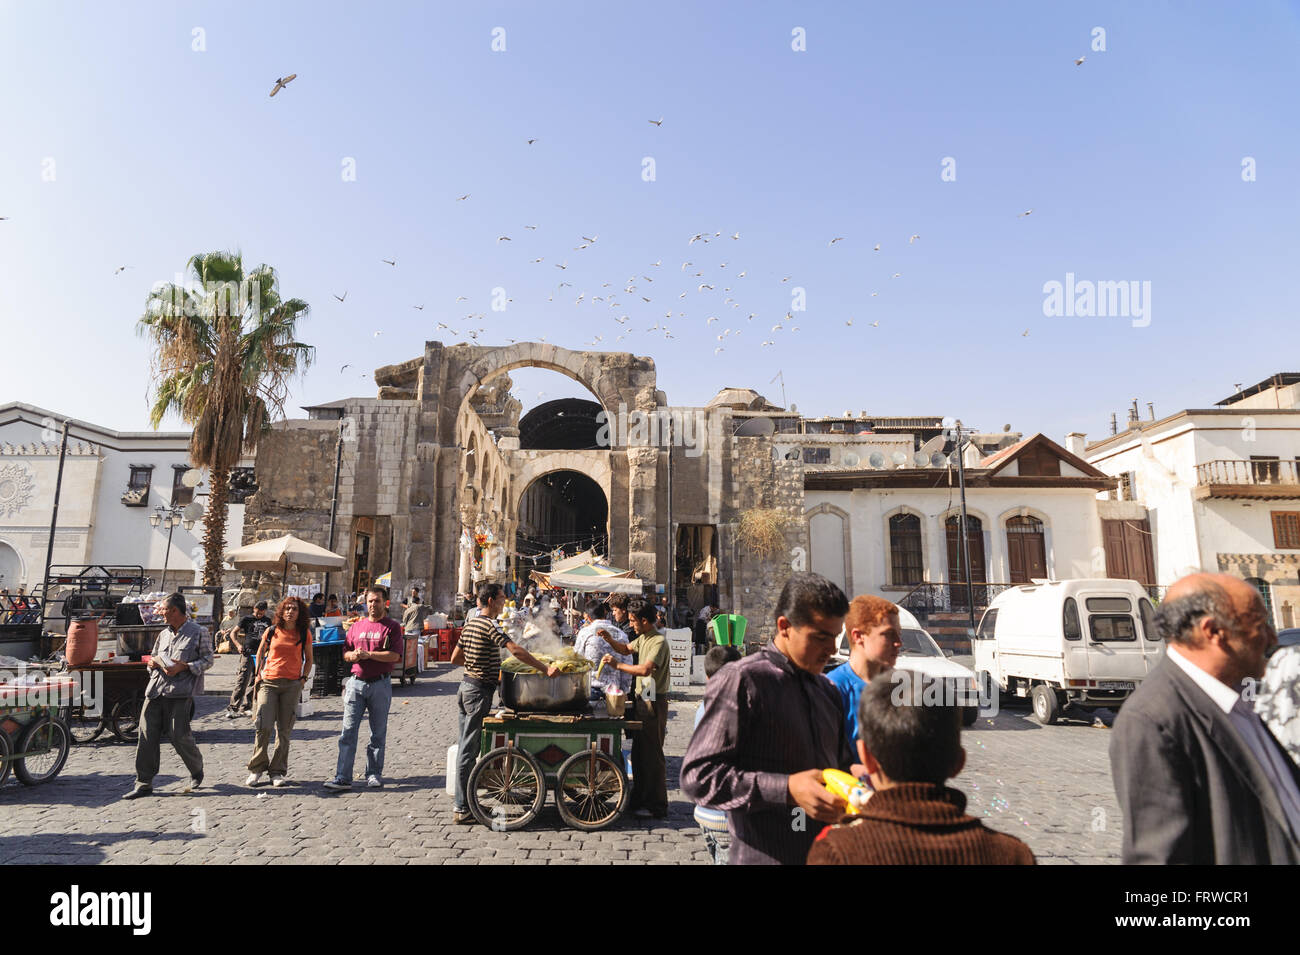 Ordinary day at Al-Hamidiyah Souq in the old city of Damascus. - Stock Image